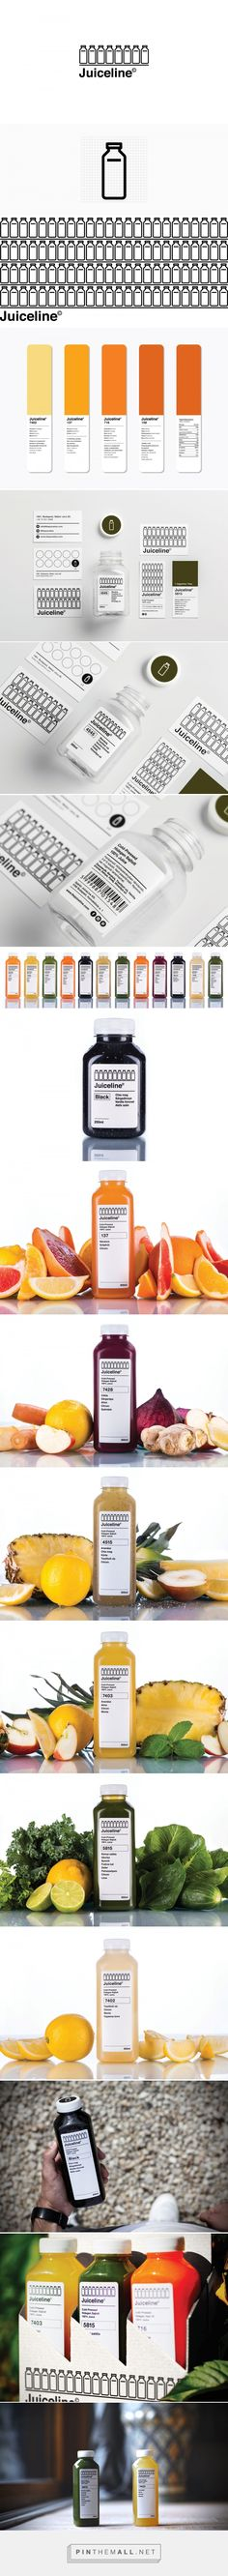 Juiceline packaging design by Kissmiklos (Hungary) - http://www.packagingoftheworld.com/2016/09/juiceline.html